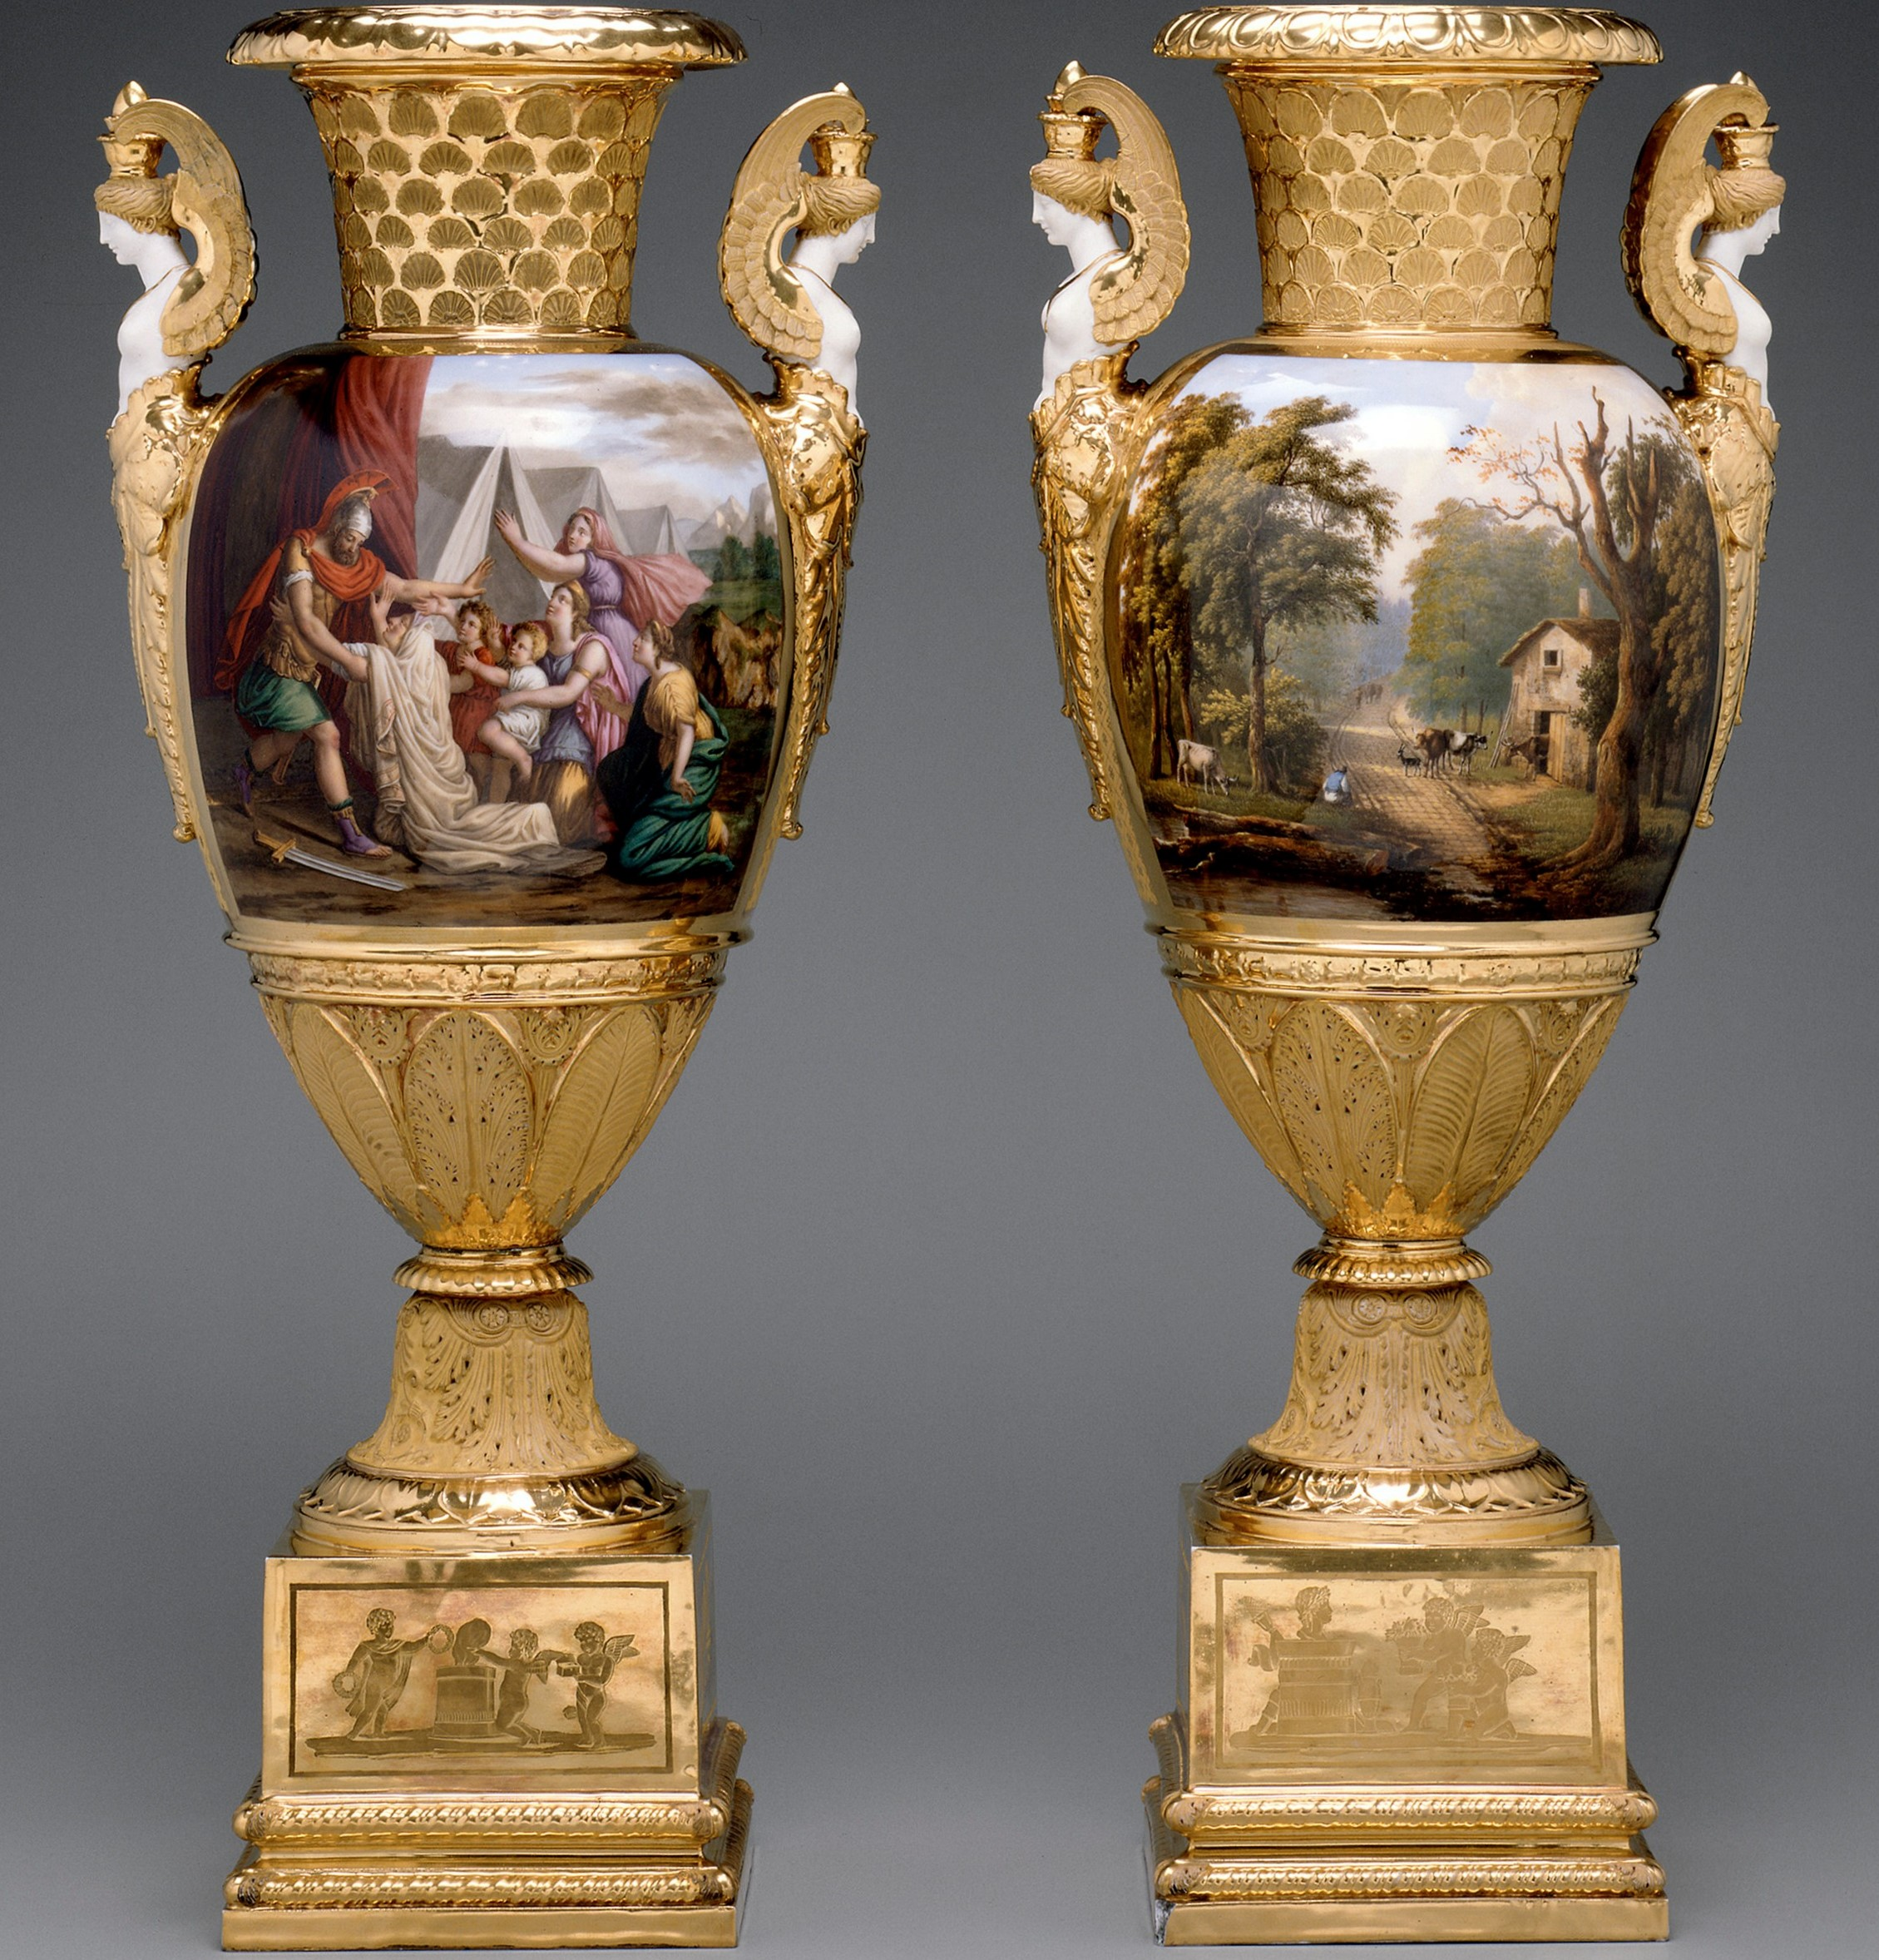 Boston 39 s museum of fine arts features french porcelain vases from its decorative arts - Museum decorative arts paris ...